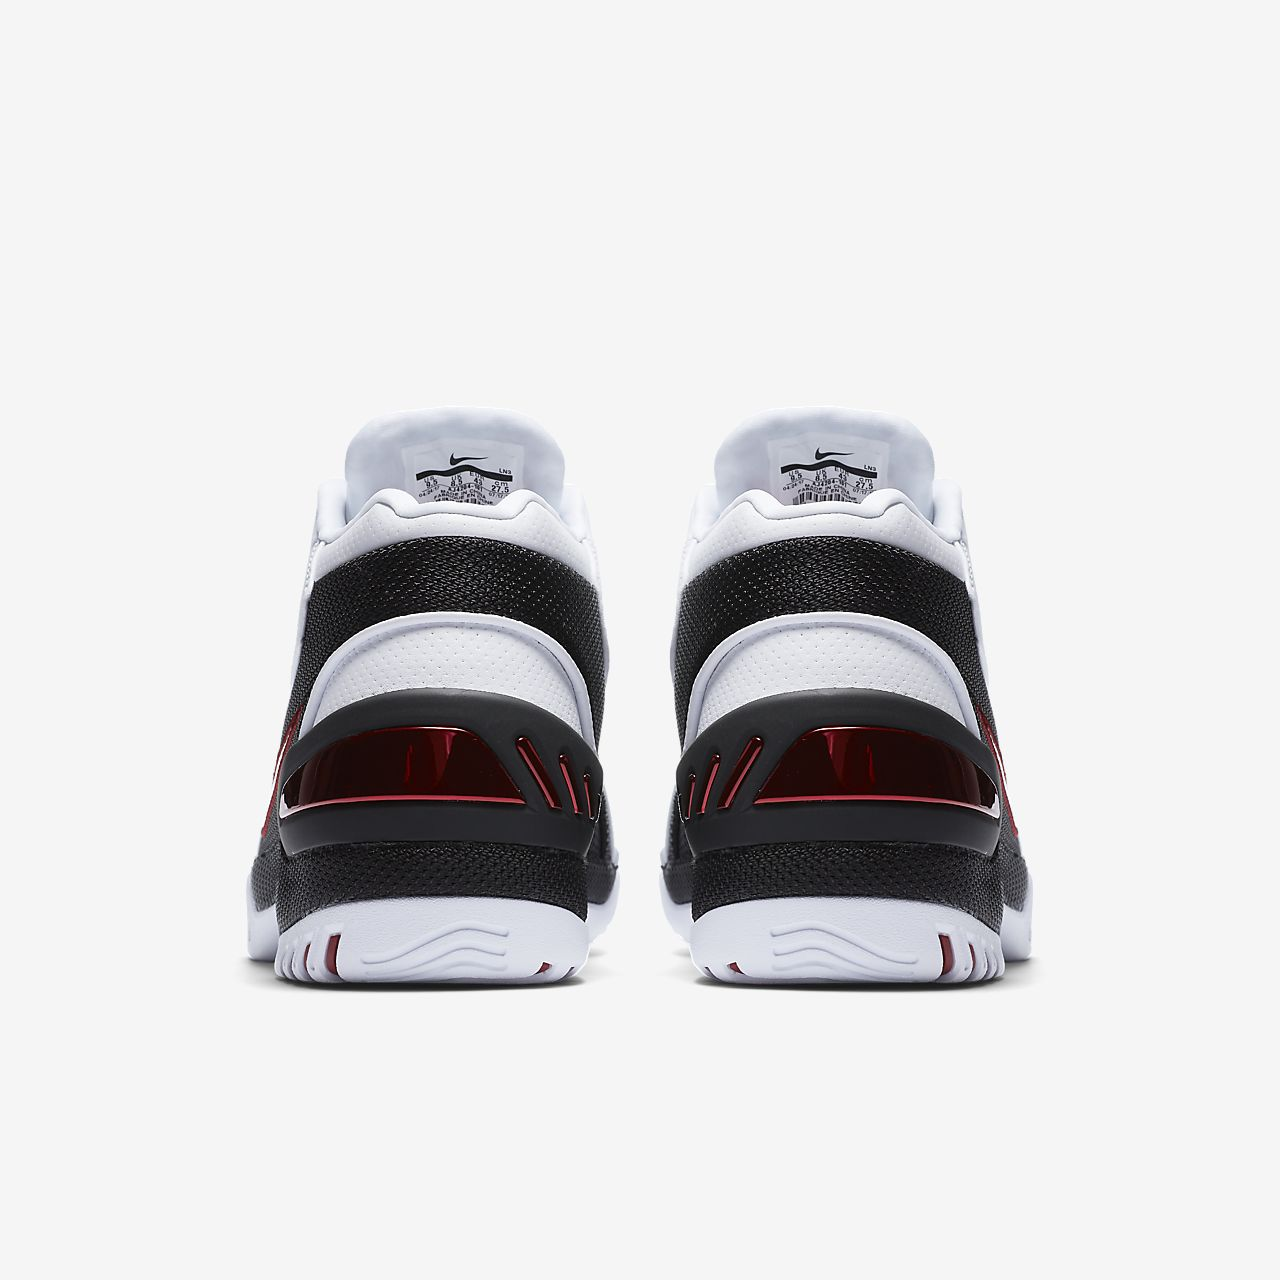 1d372827a1e43 Low Resolution Nike Air Zoom Generation QS Men s Basketball Shoe Nike Air  Zoom Generation QS Men s Basketball Shoe